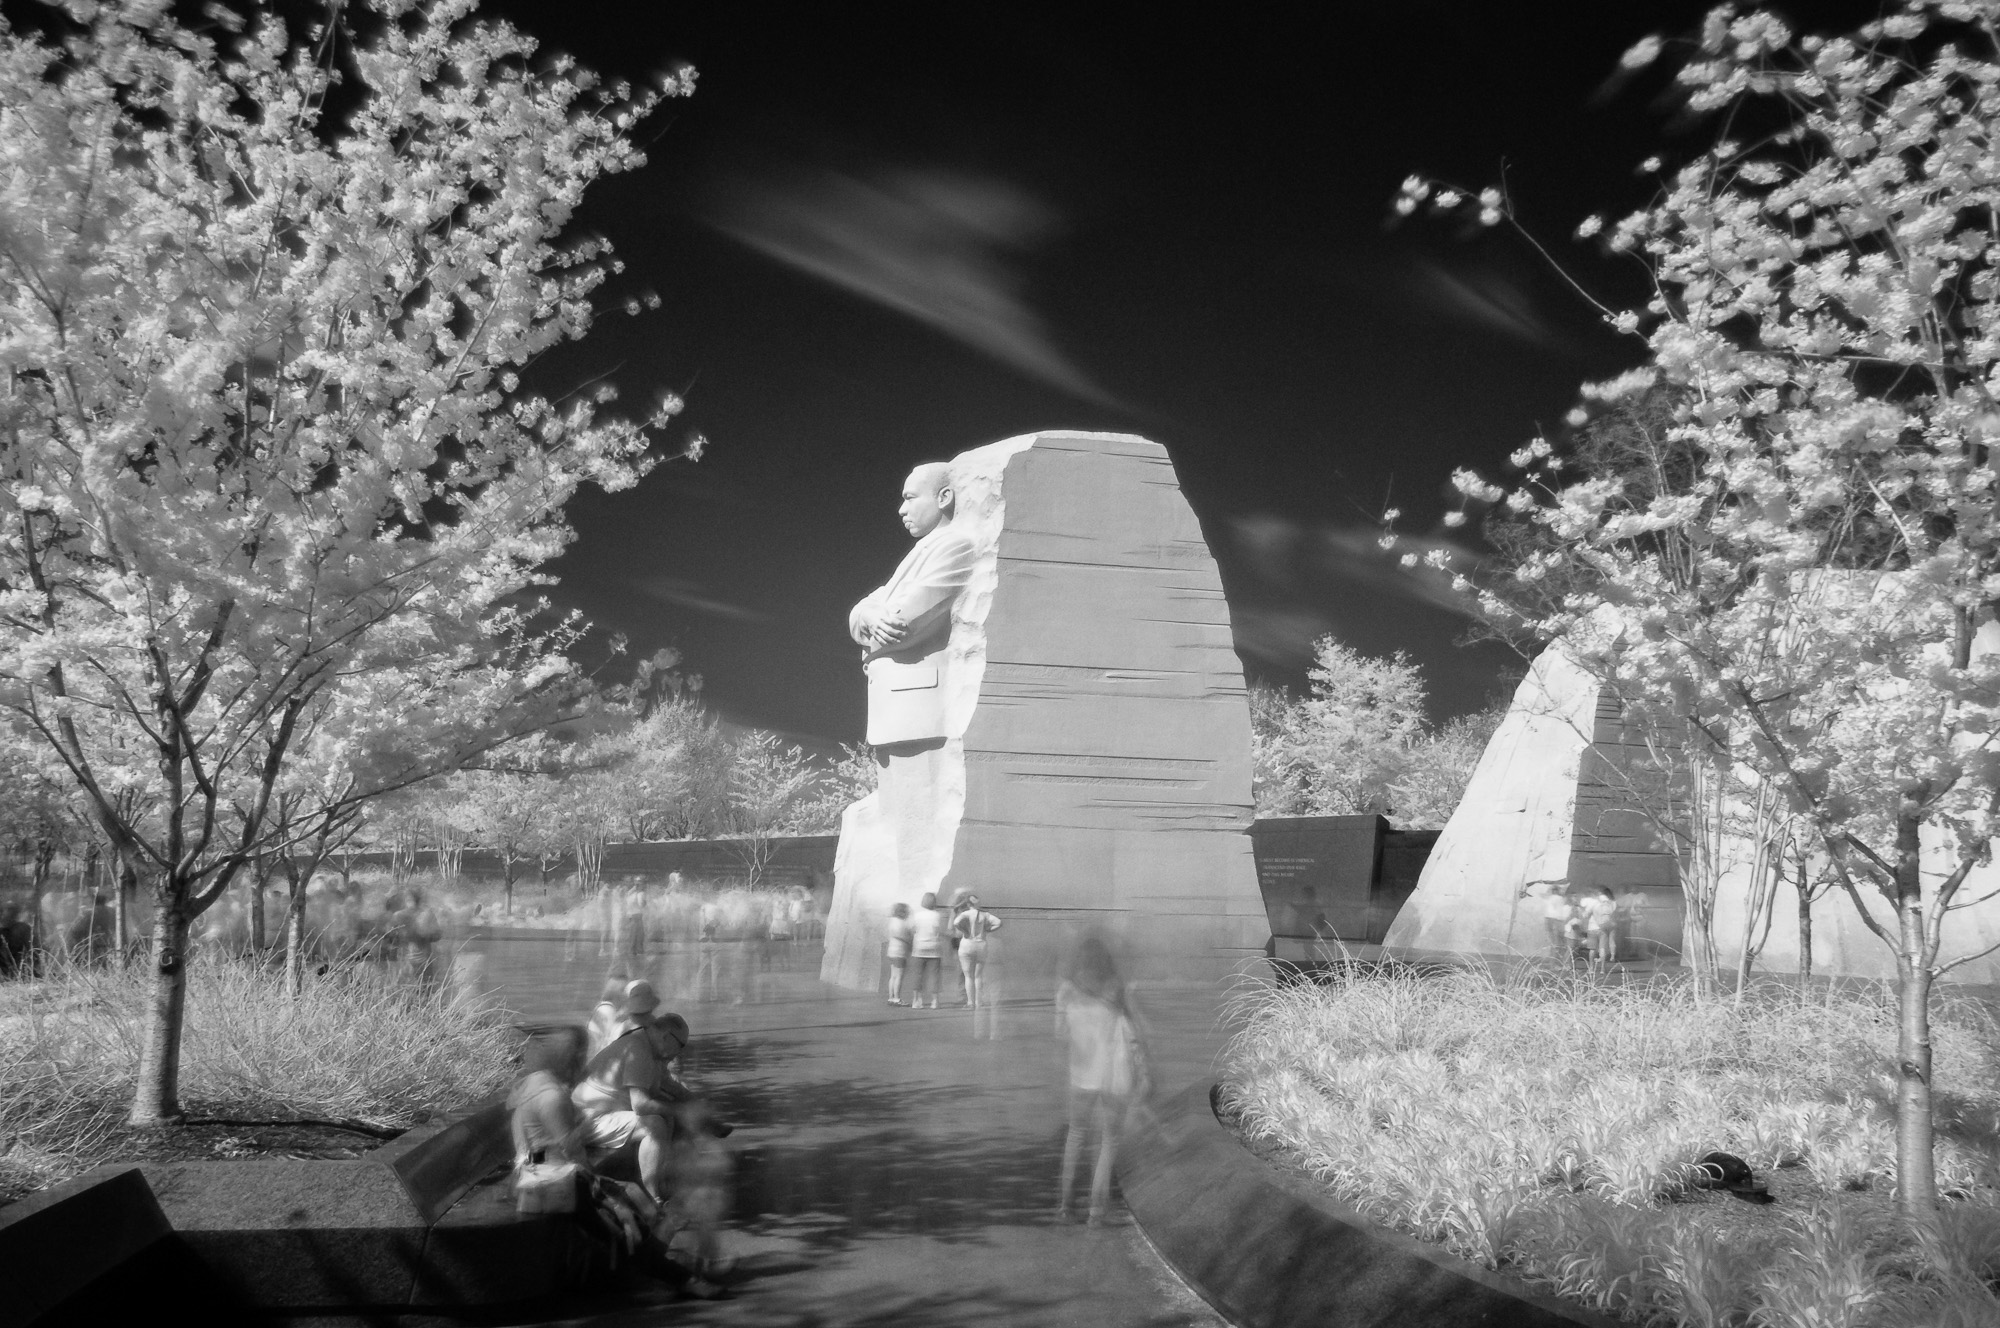 Long exposure showing moving crowds around Martin Luther King, Jr. Memorial (drum major quote removed). This photograph is an Infrared black and white.